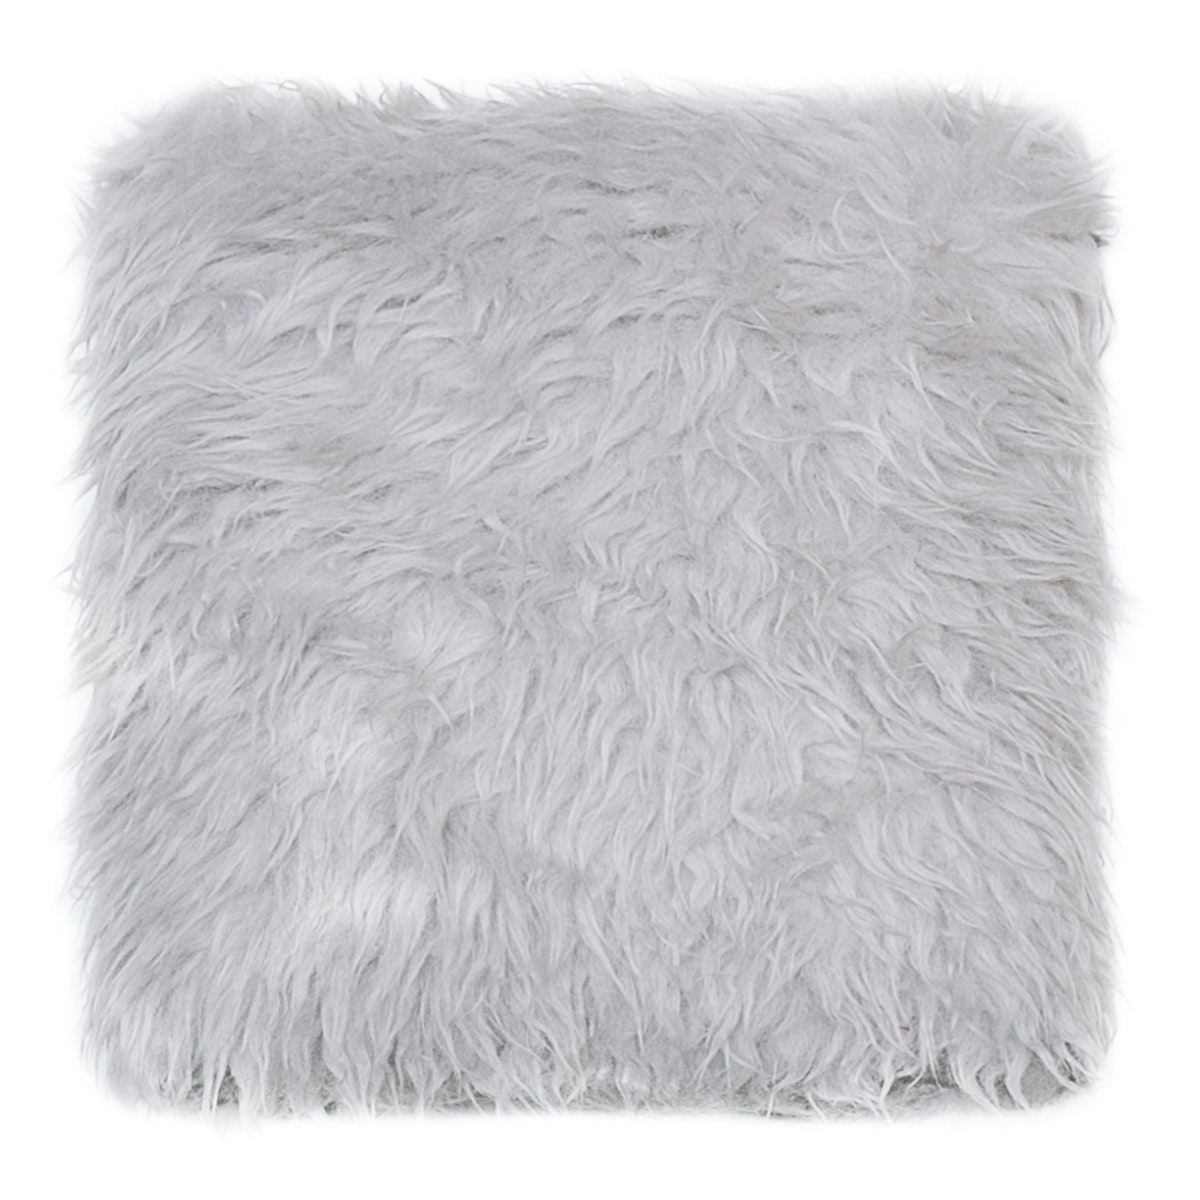 Glerry Home Decor Light Grey Fur Cushion 40x40cm